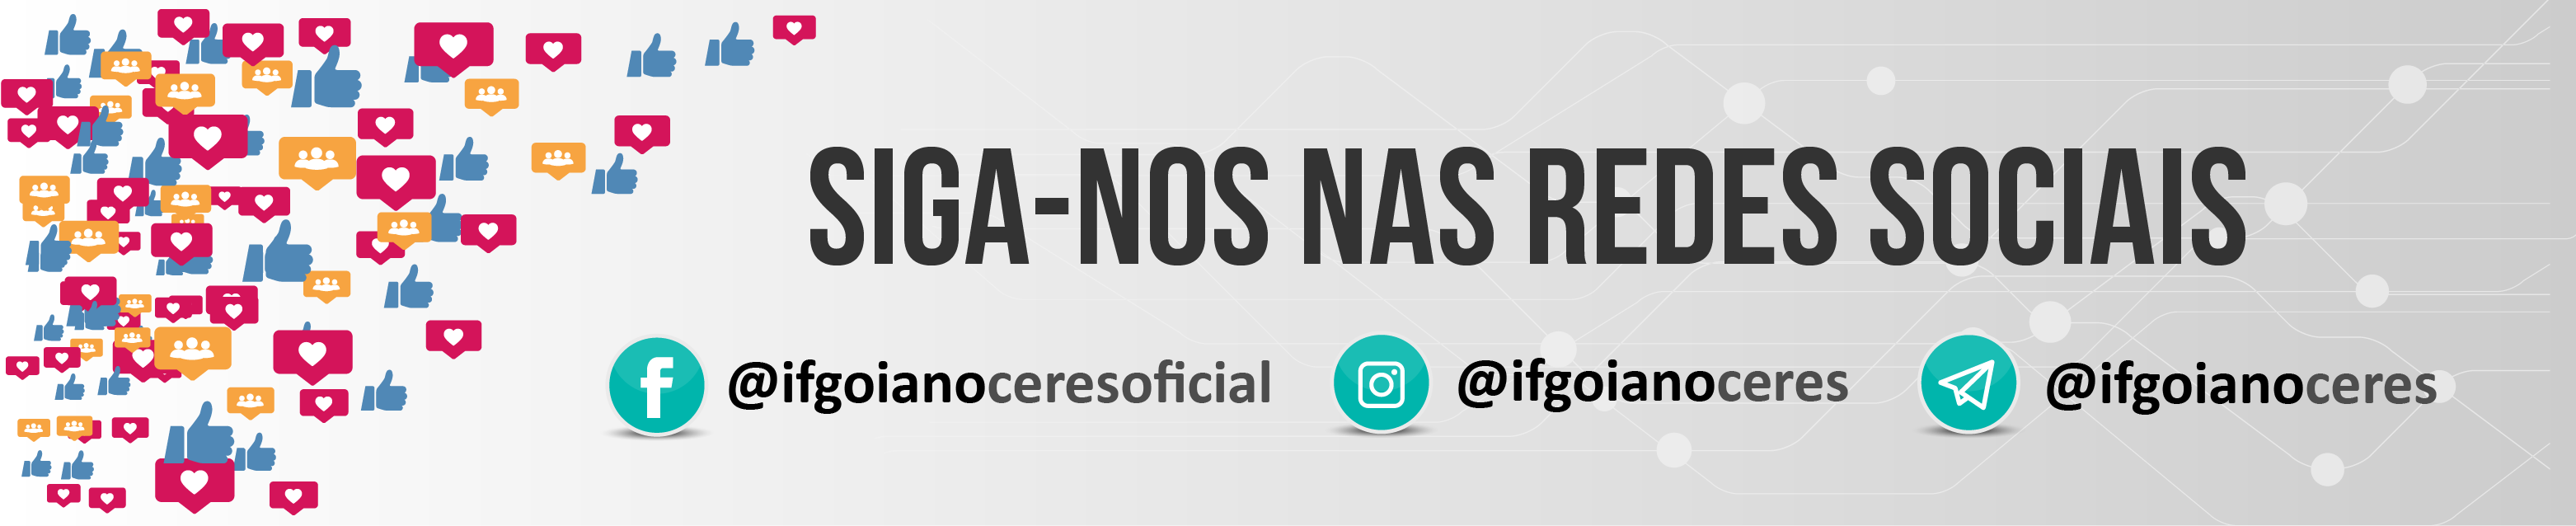 Redes sociais do Campus Ceres